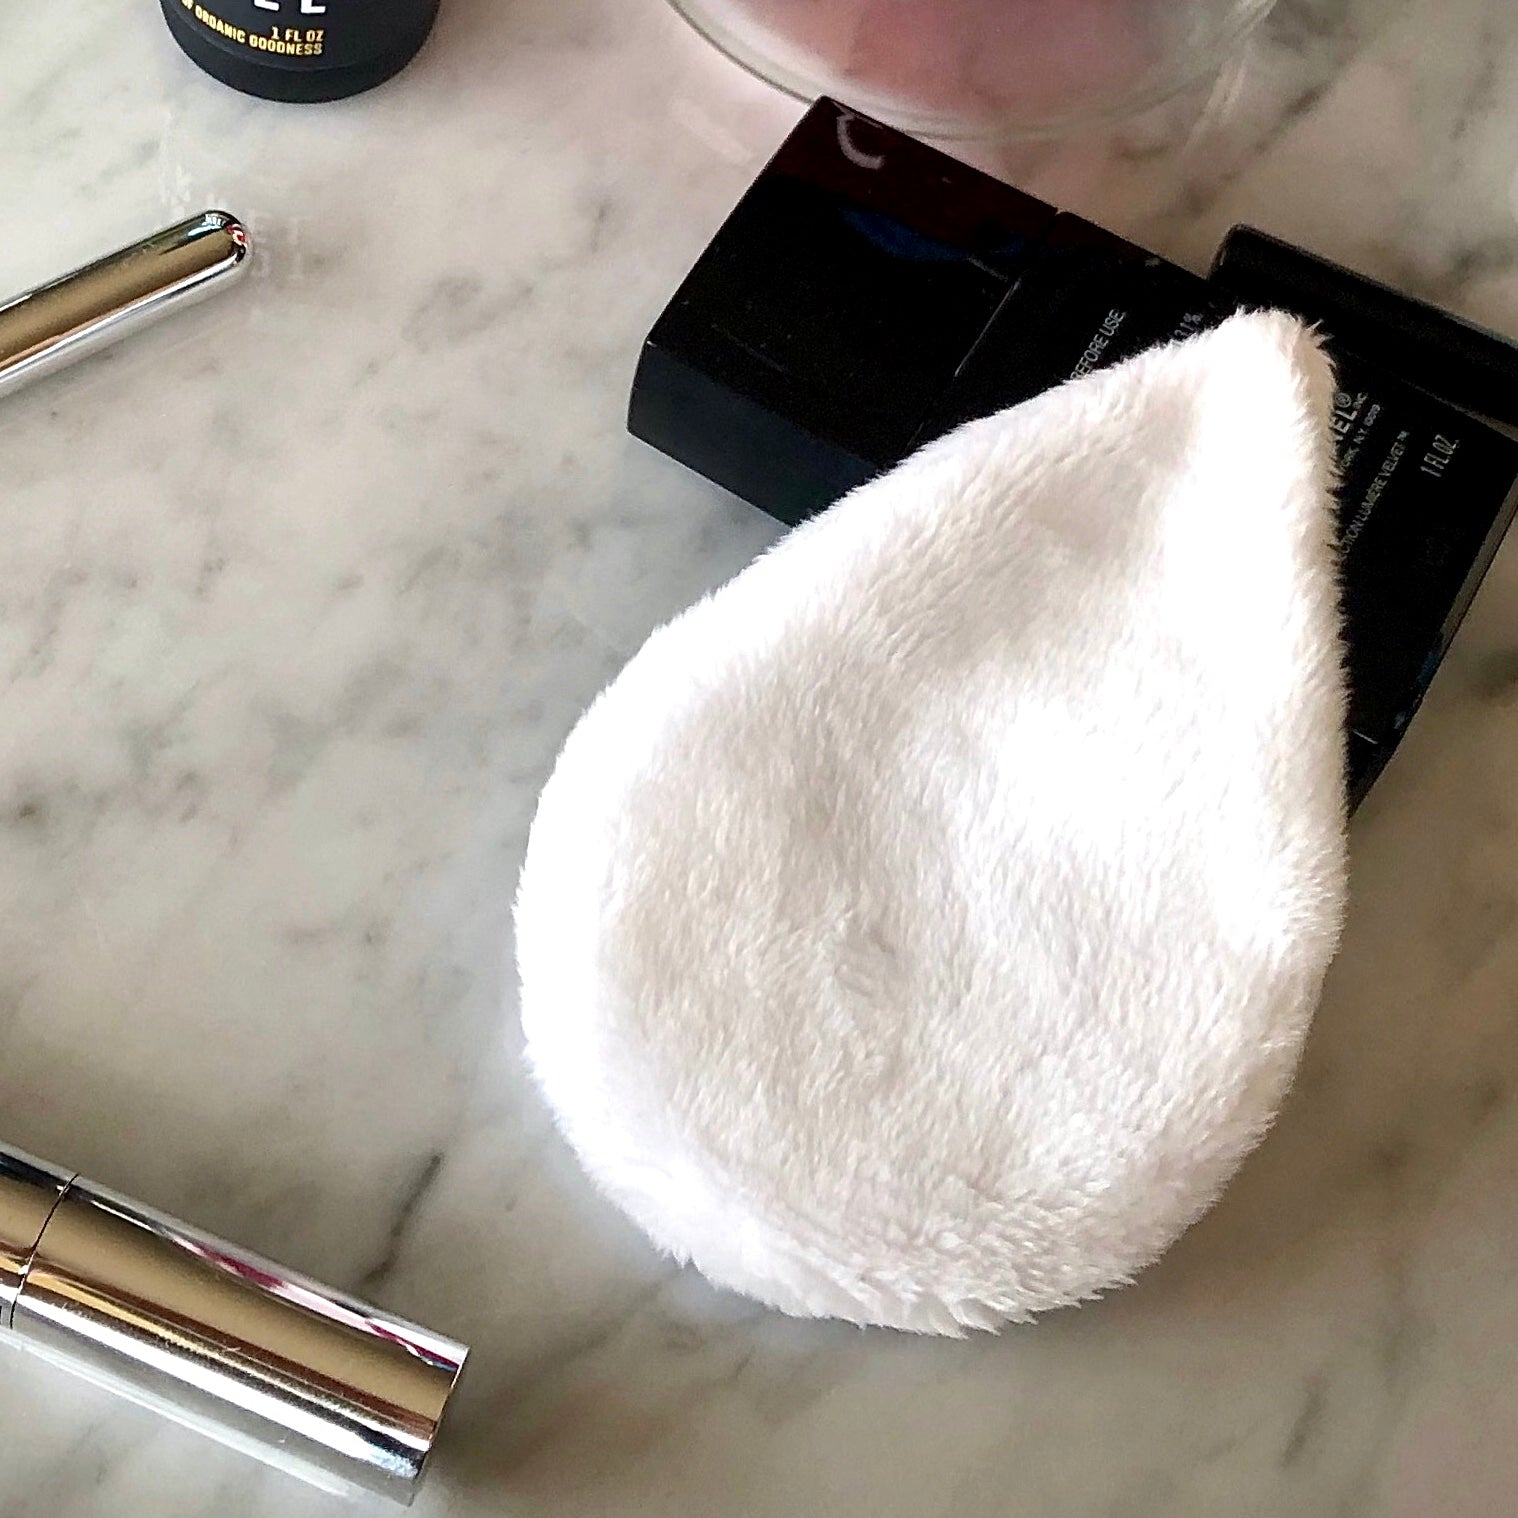 The Mitty Mini works with your skincare